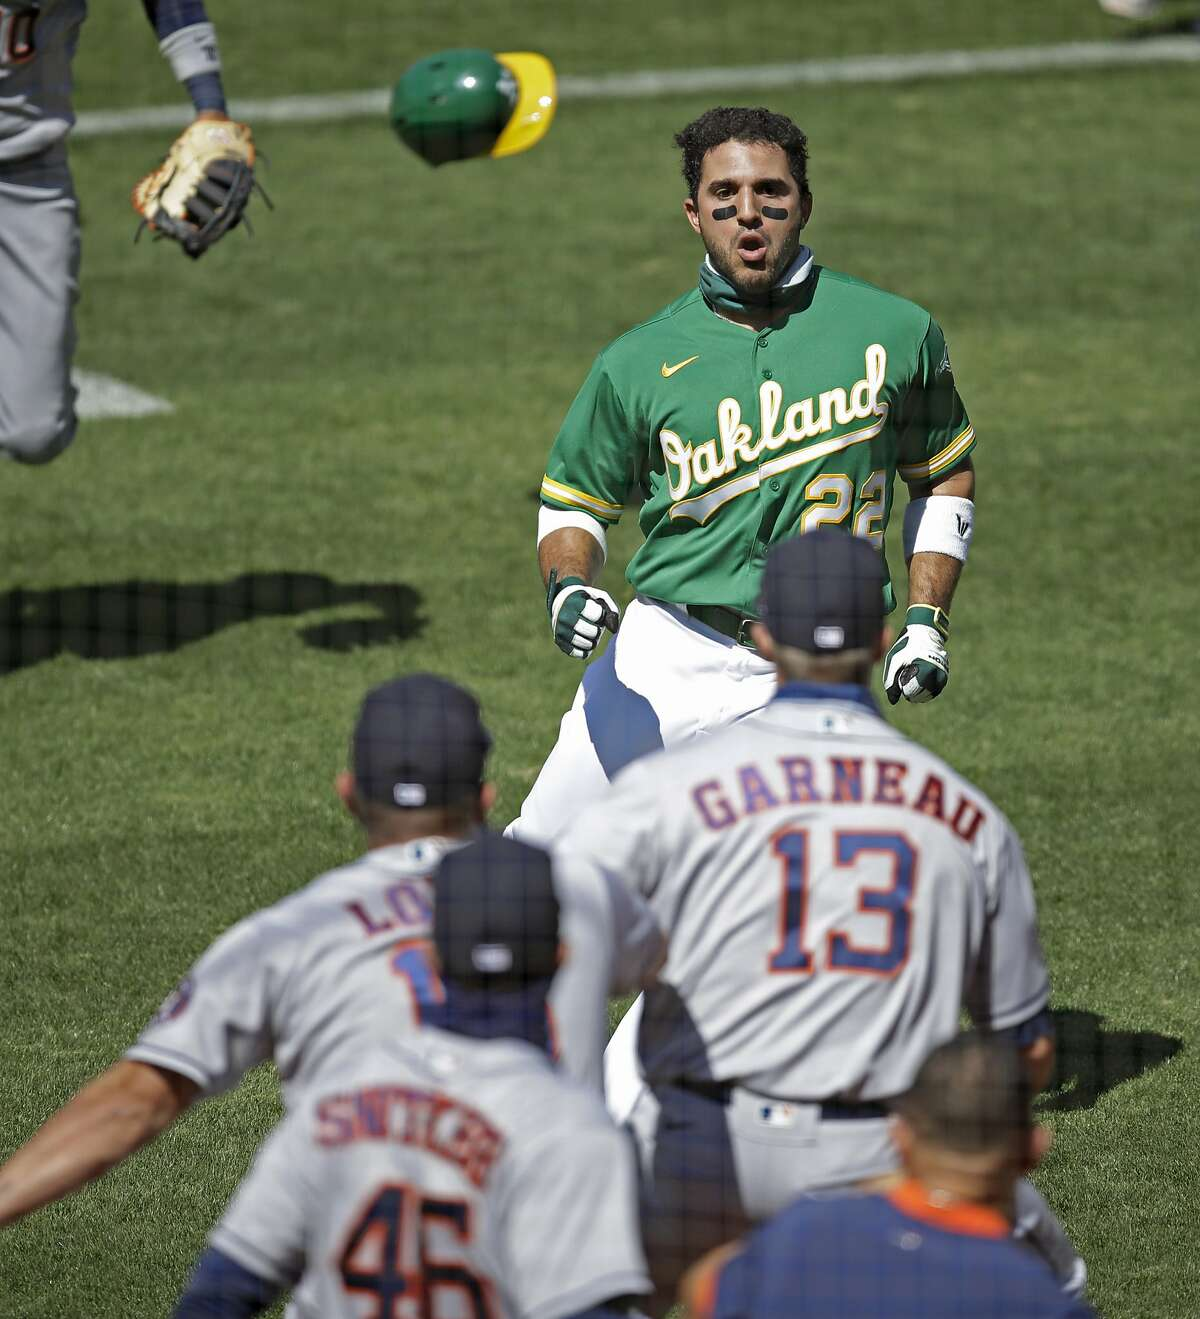 Oakland Athletics' Ramon Laureano (22) charges the Houston Astros' dugout after being hit by a pitch thrown by Humberto Castellanos during the seventh inning of a baseball game Sunday, Aug. 9, 2020, in Oakland, Calif.